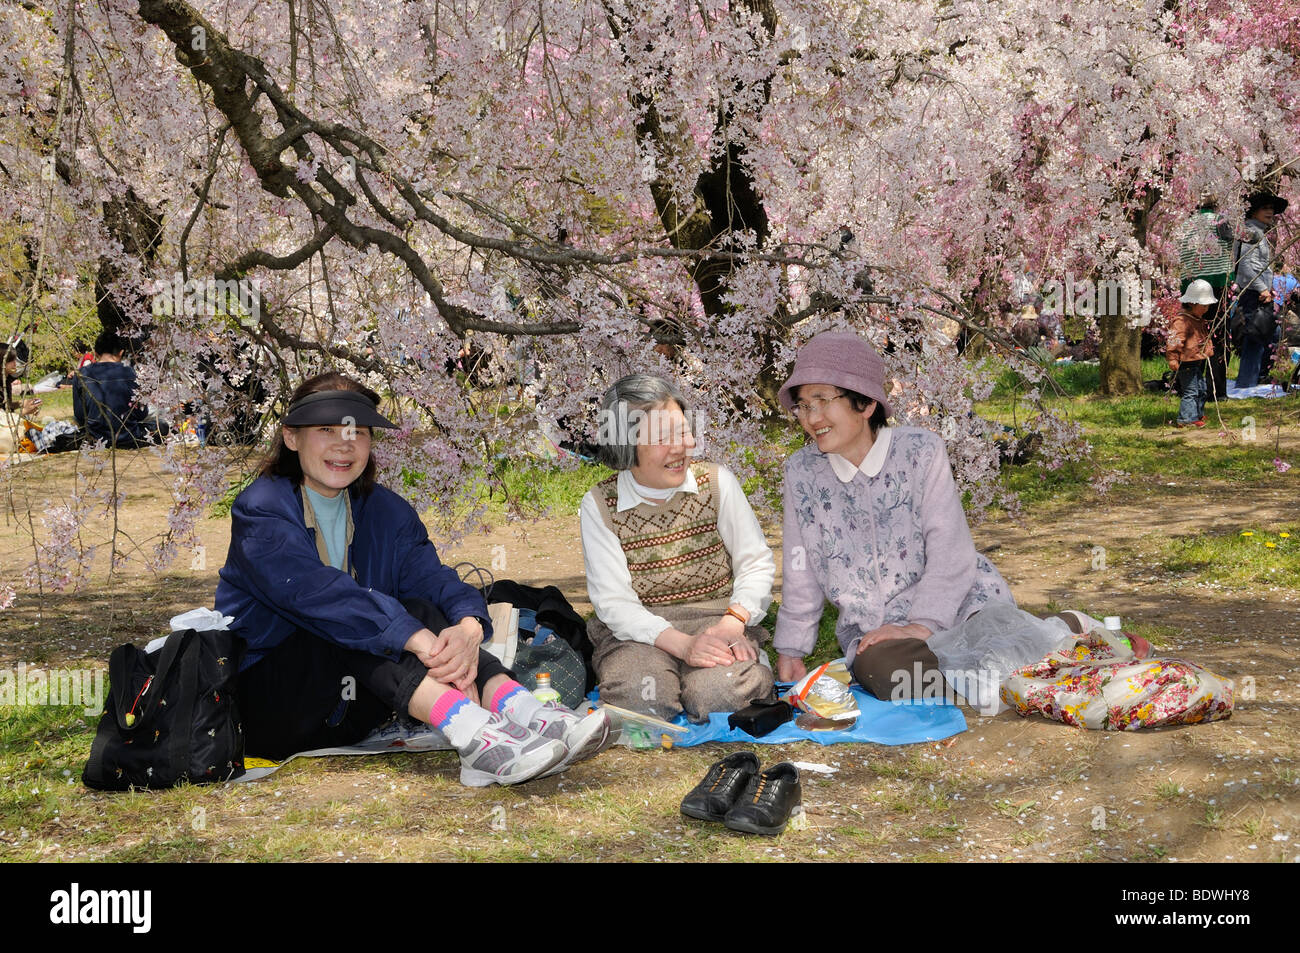 Cherry Blossom Festival at the Kyoto Botanical Garden, picnic under a blossoming tree in Kyoto, Japan, East Asia, Stock Photo